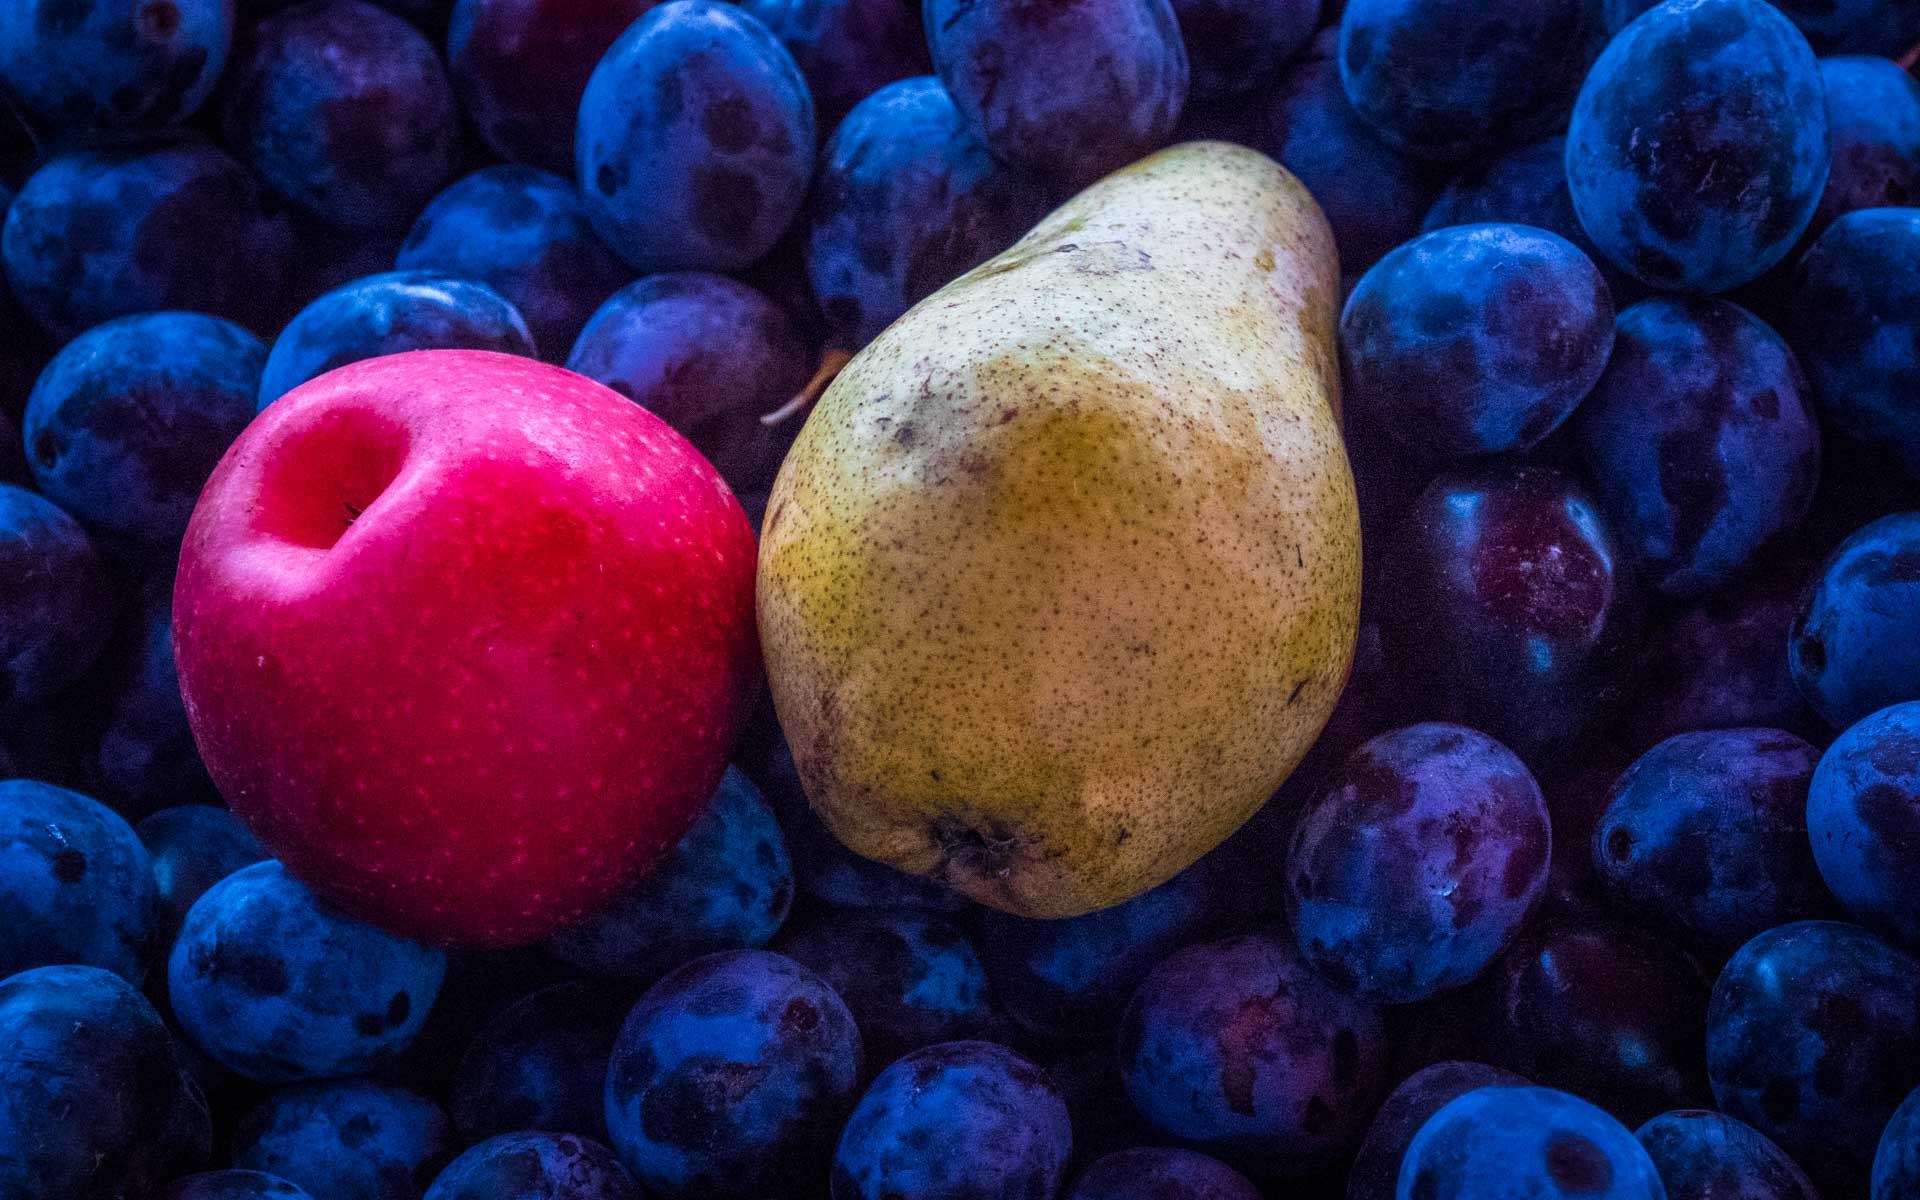 Fruits in the colors of the Romanian flag